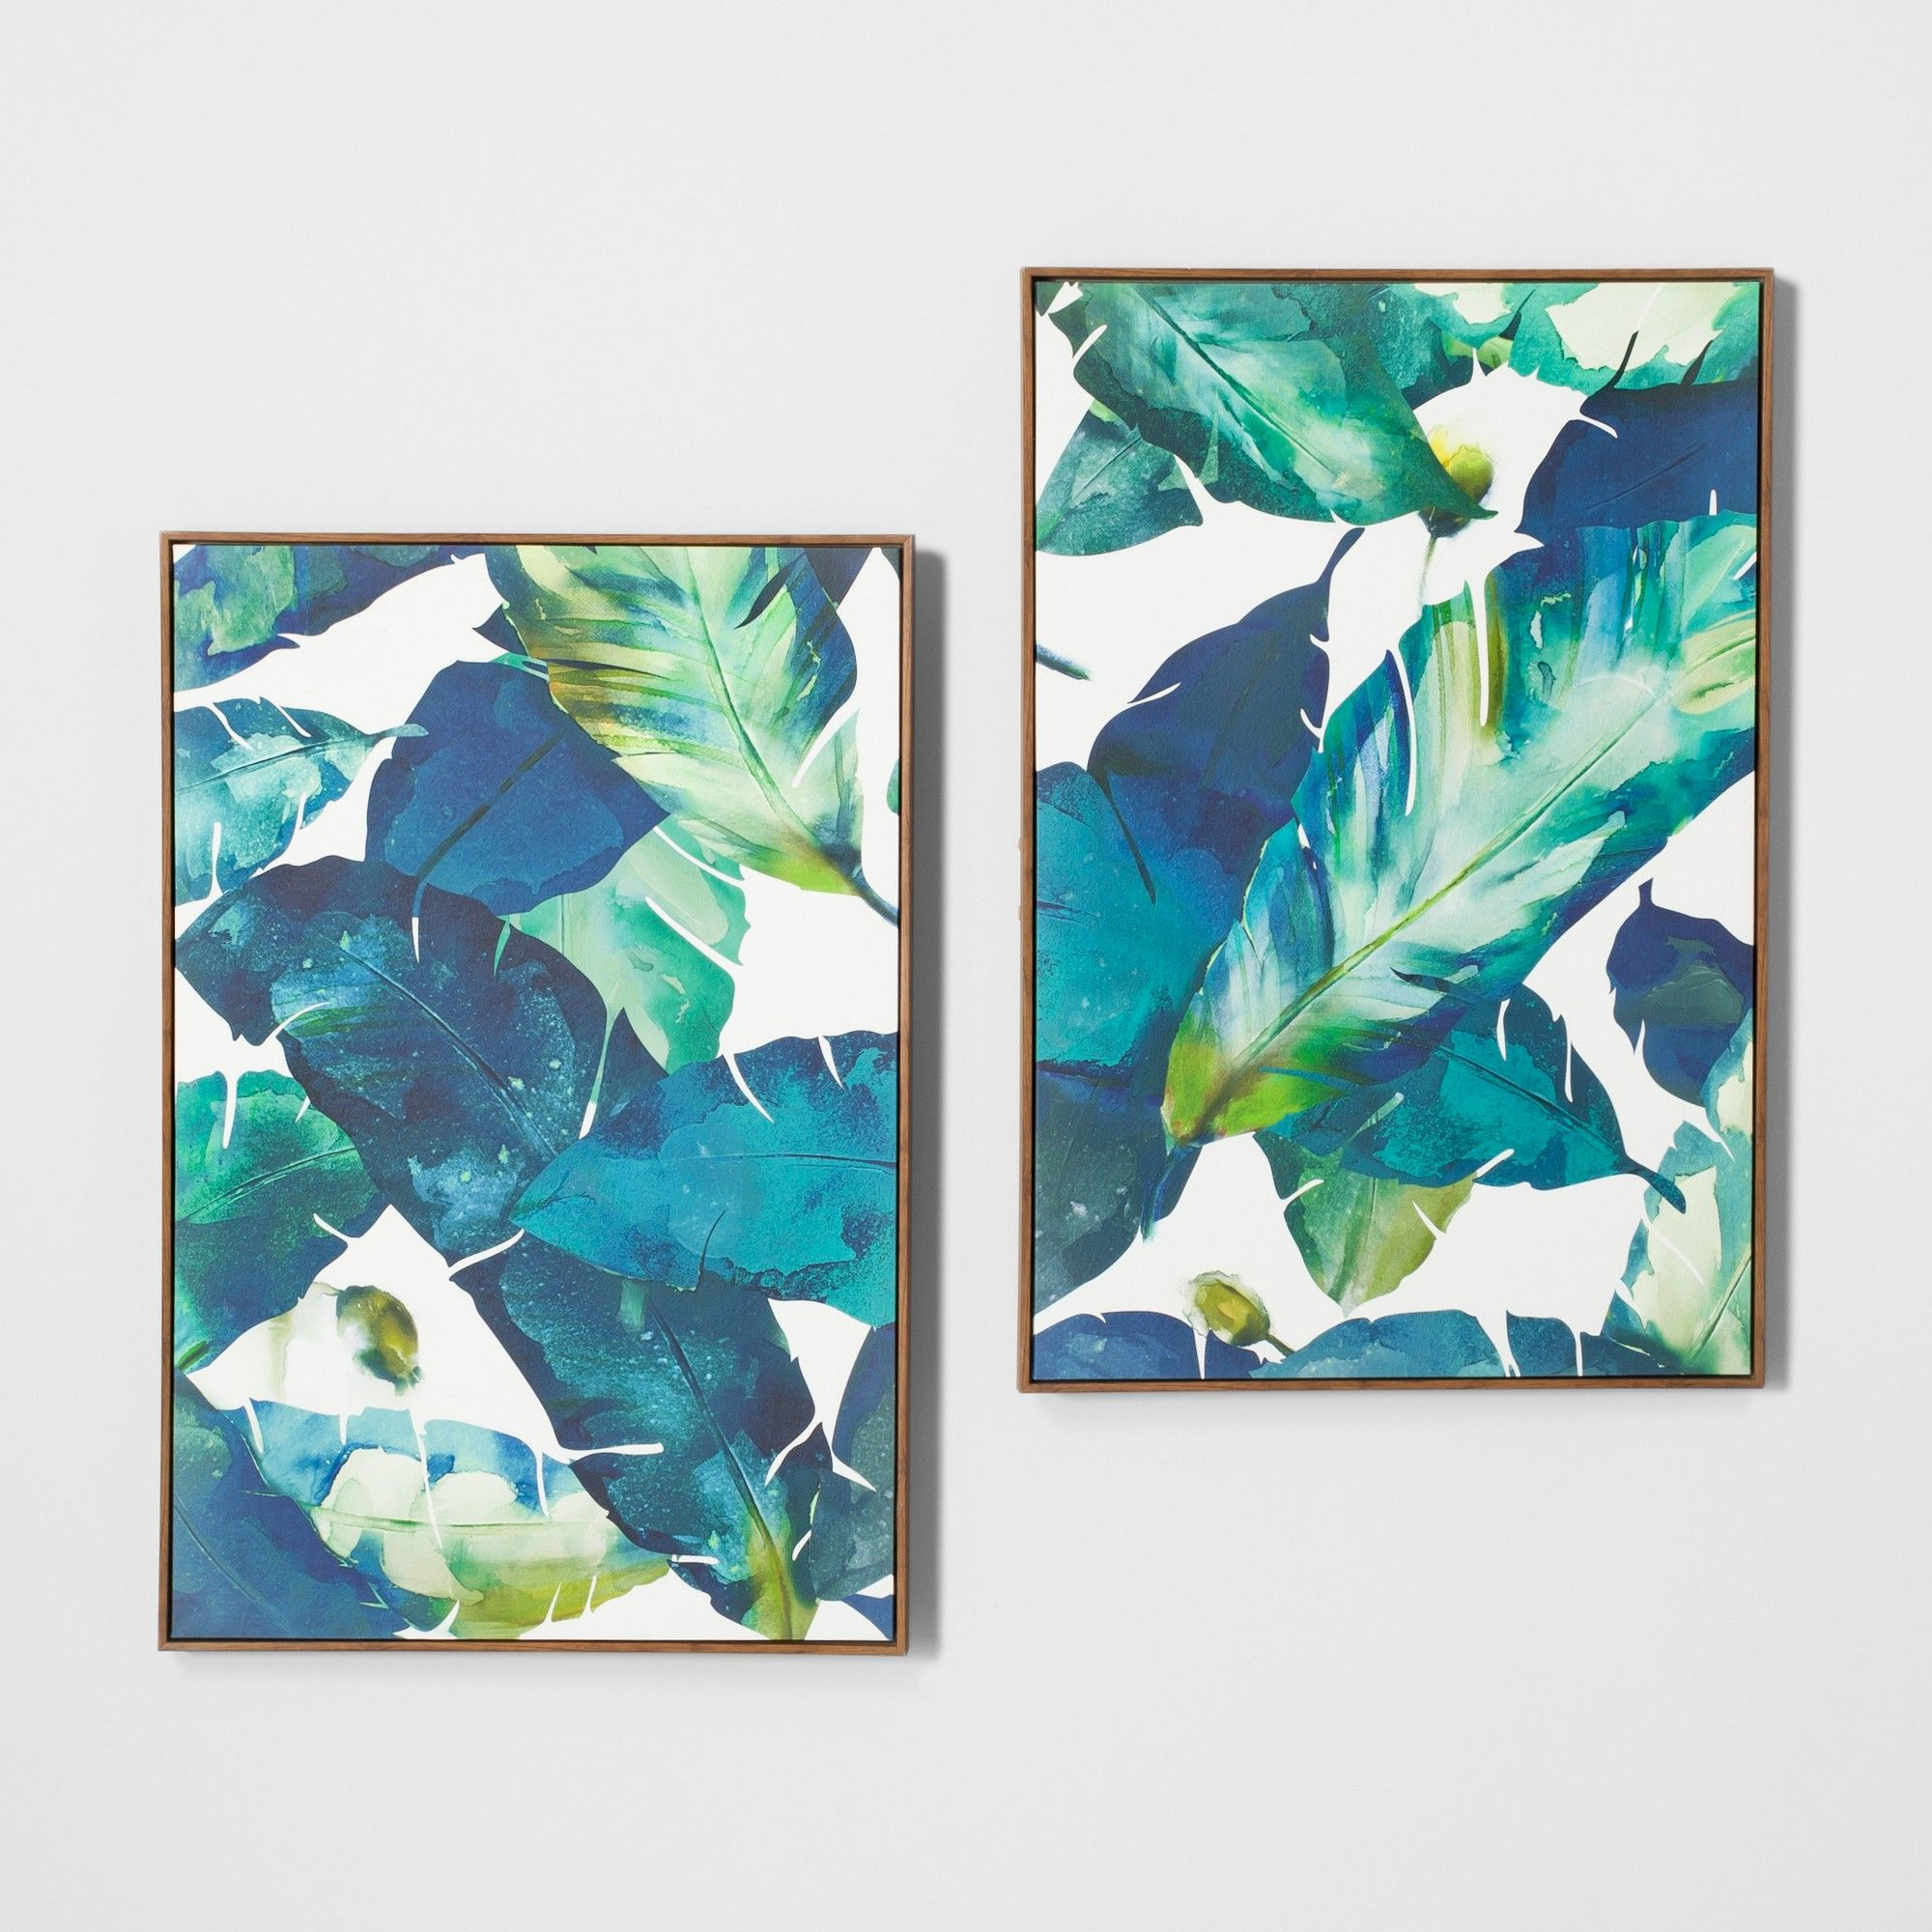 LARGE ABSTRACT CANVAS ART PRINT VIBRANT BLUE FRAMED A1